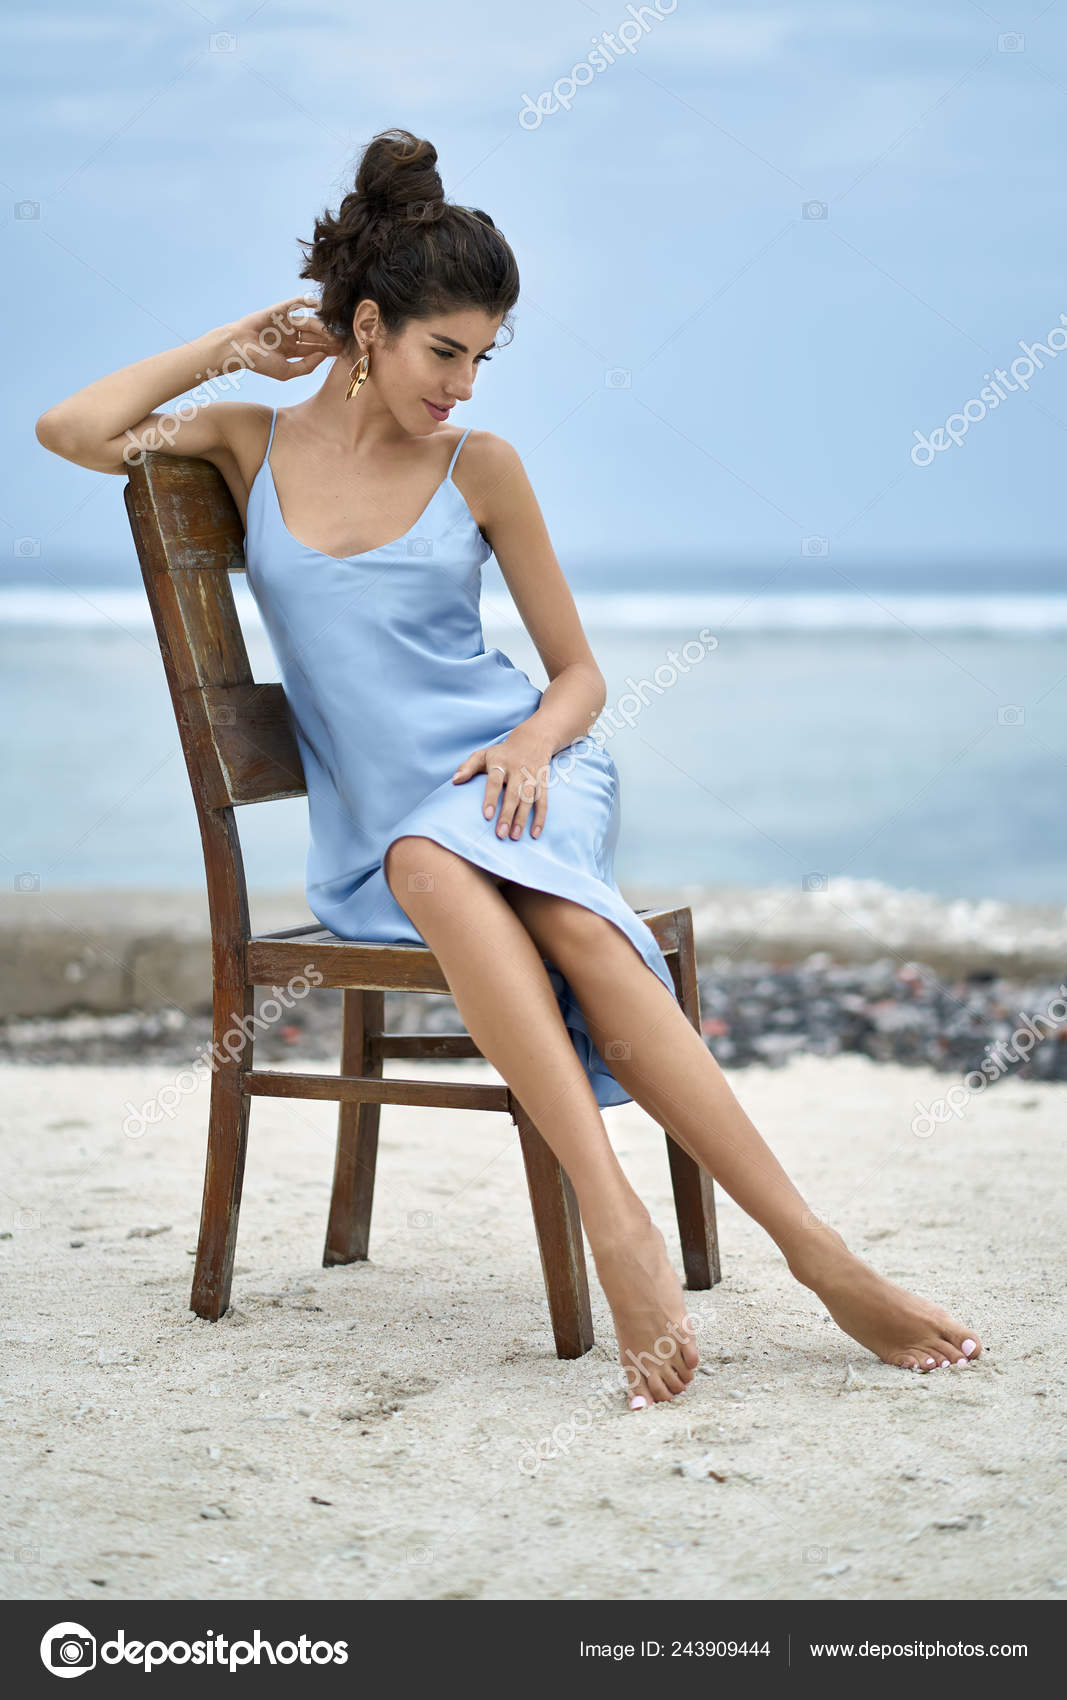 Brunette Woman In Blue Dress Posing On Chair On Sand Beach Stock Photo Image By C Bezikus 243909444